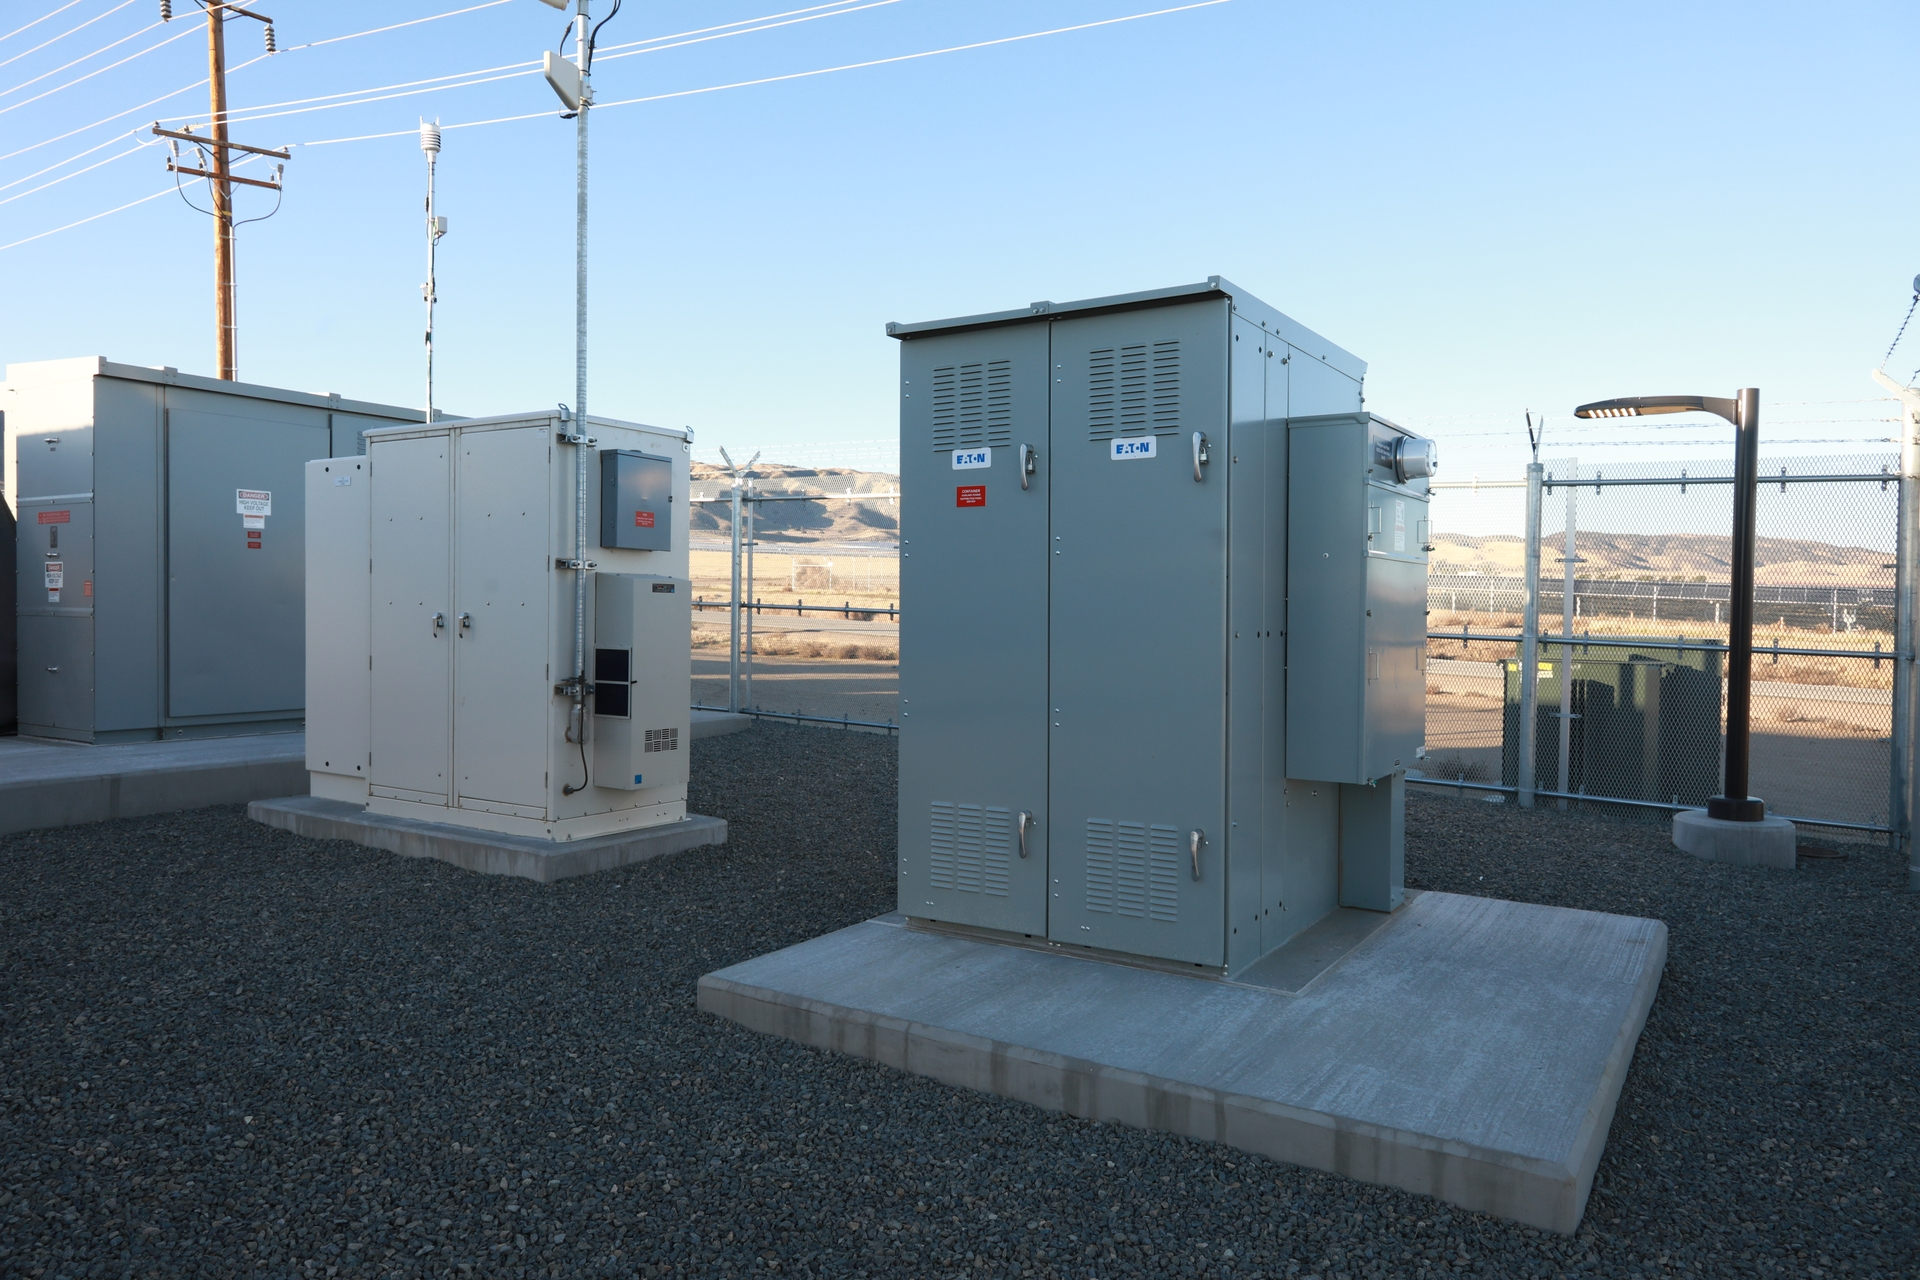 System elements (l-r): 12kV switchgear, communications cabinet, and the auxiliary power distribution panel, which powers the controls, lights and air-conditioning systems.